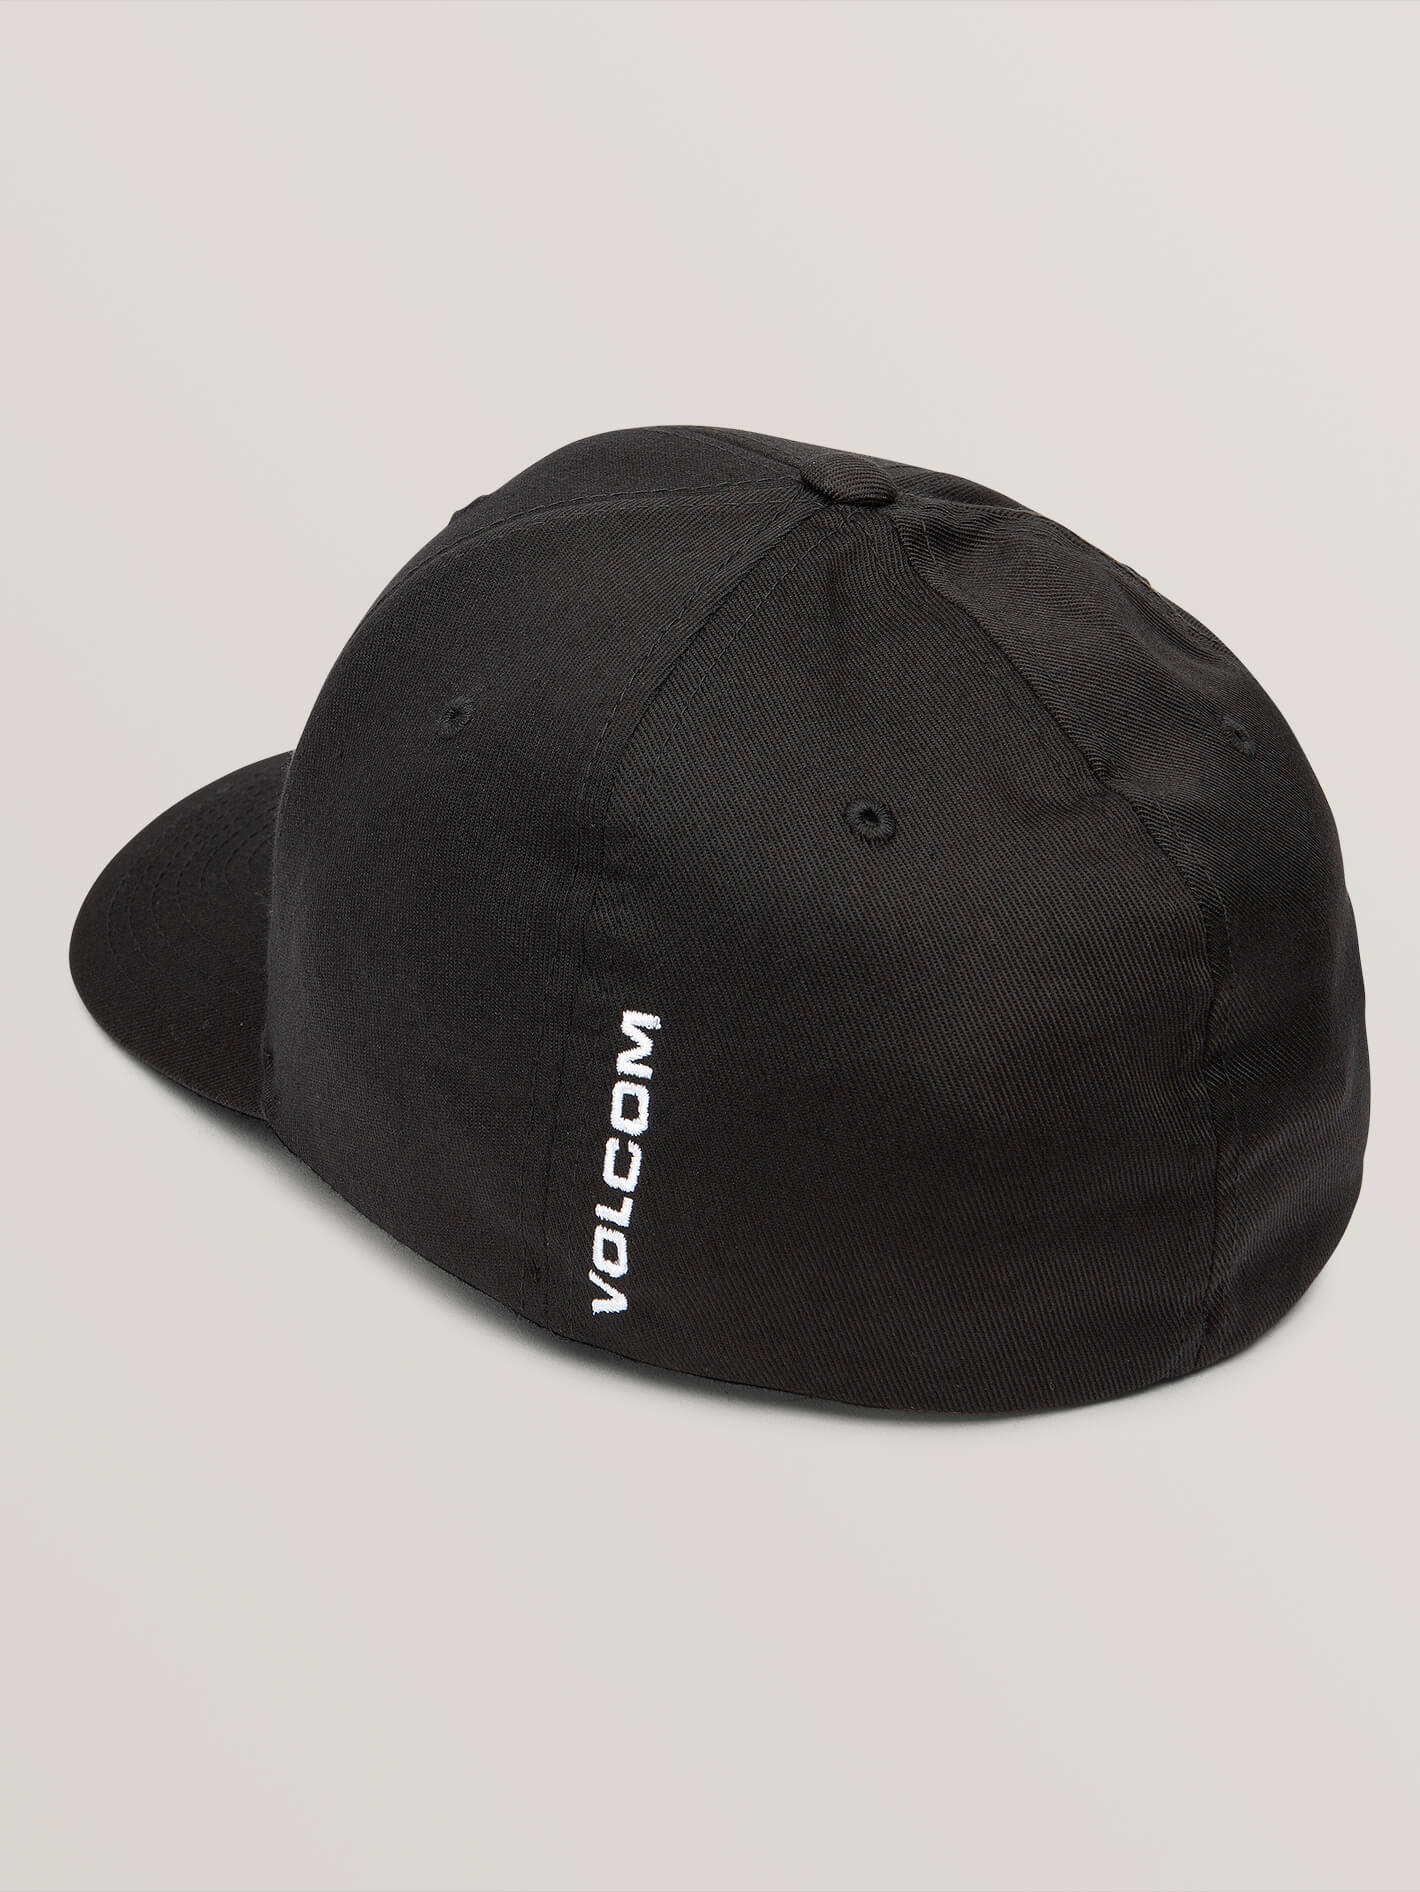 970d7406 Full Stone Xfit Hat - Black